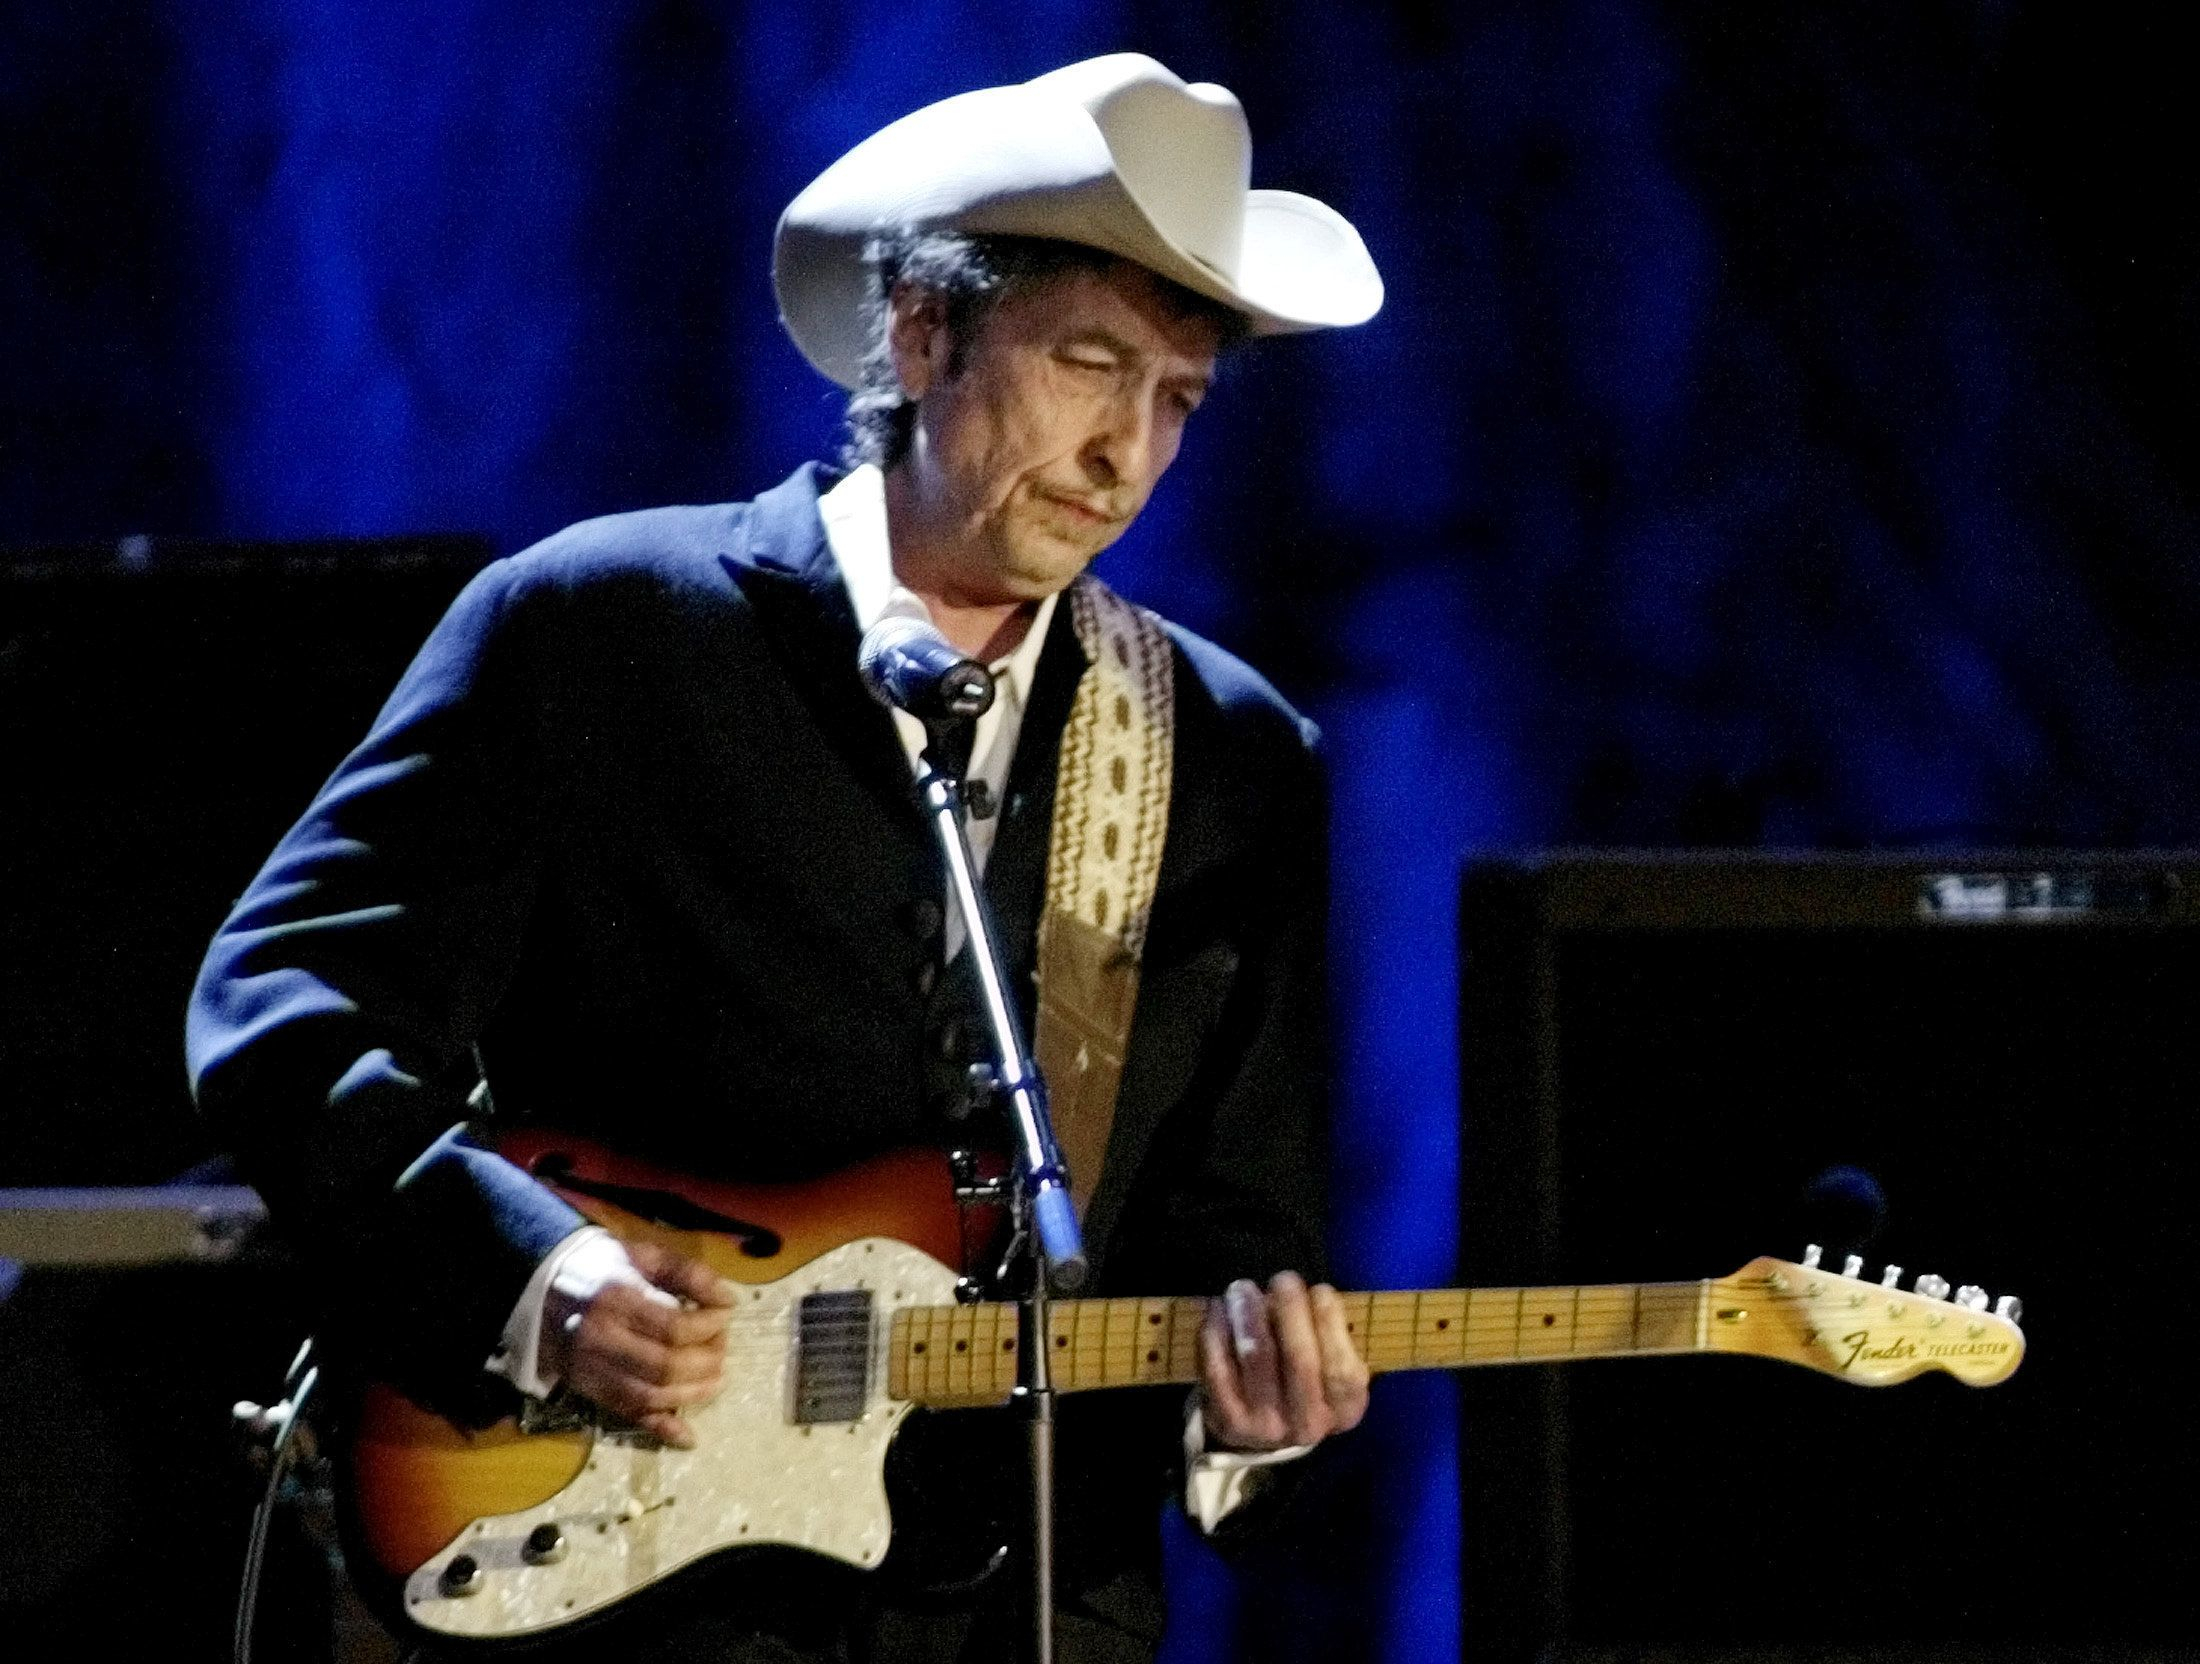 Swedish Academy Confirms Bob Dylan Won't Attend Nobel Prize Ceremony After